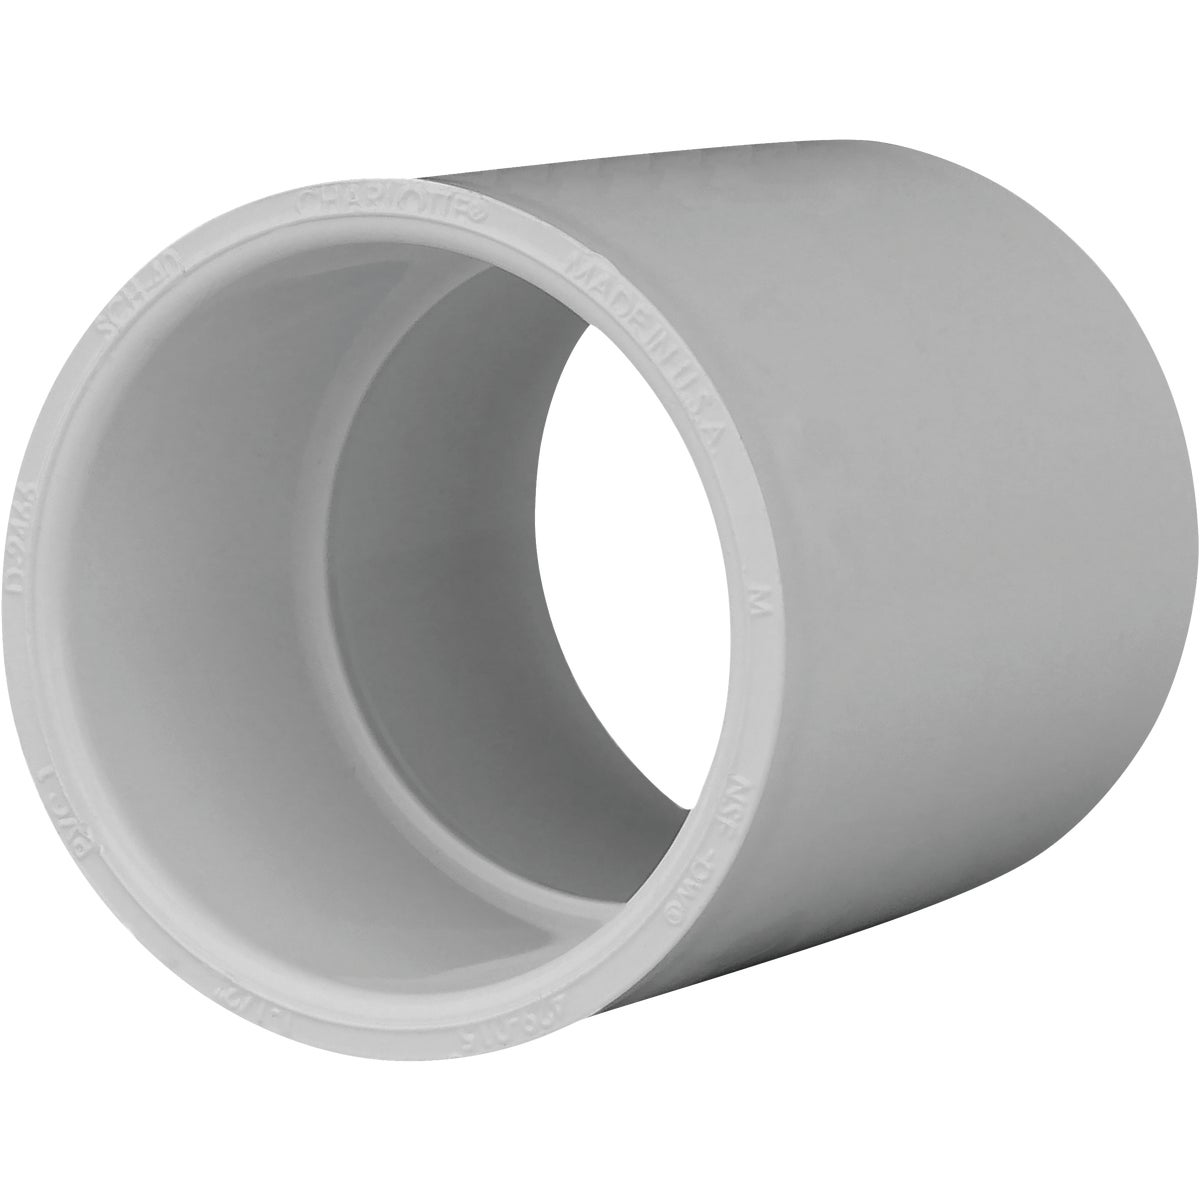 "1-1/2"" SCH40 PVC CPLG - 30115 by Genova Inc"